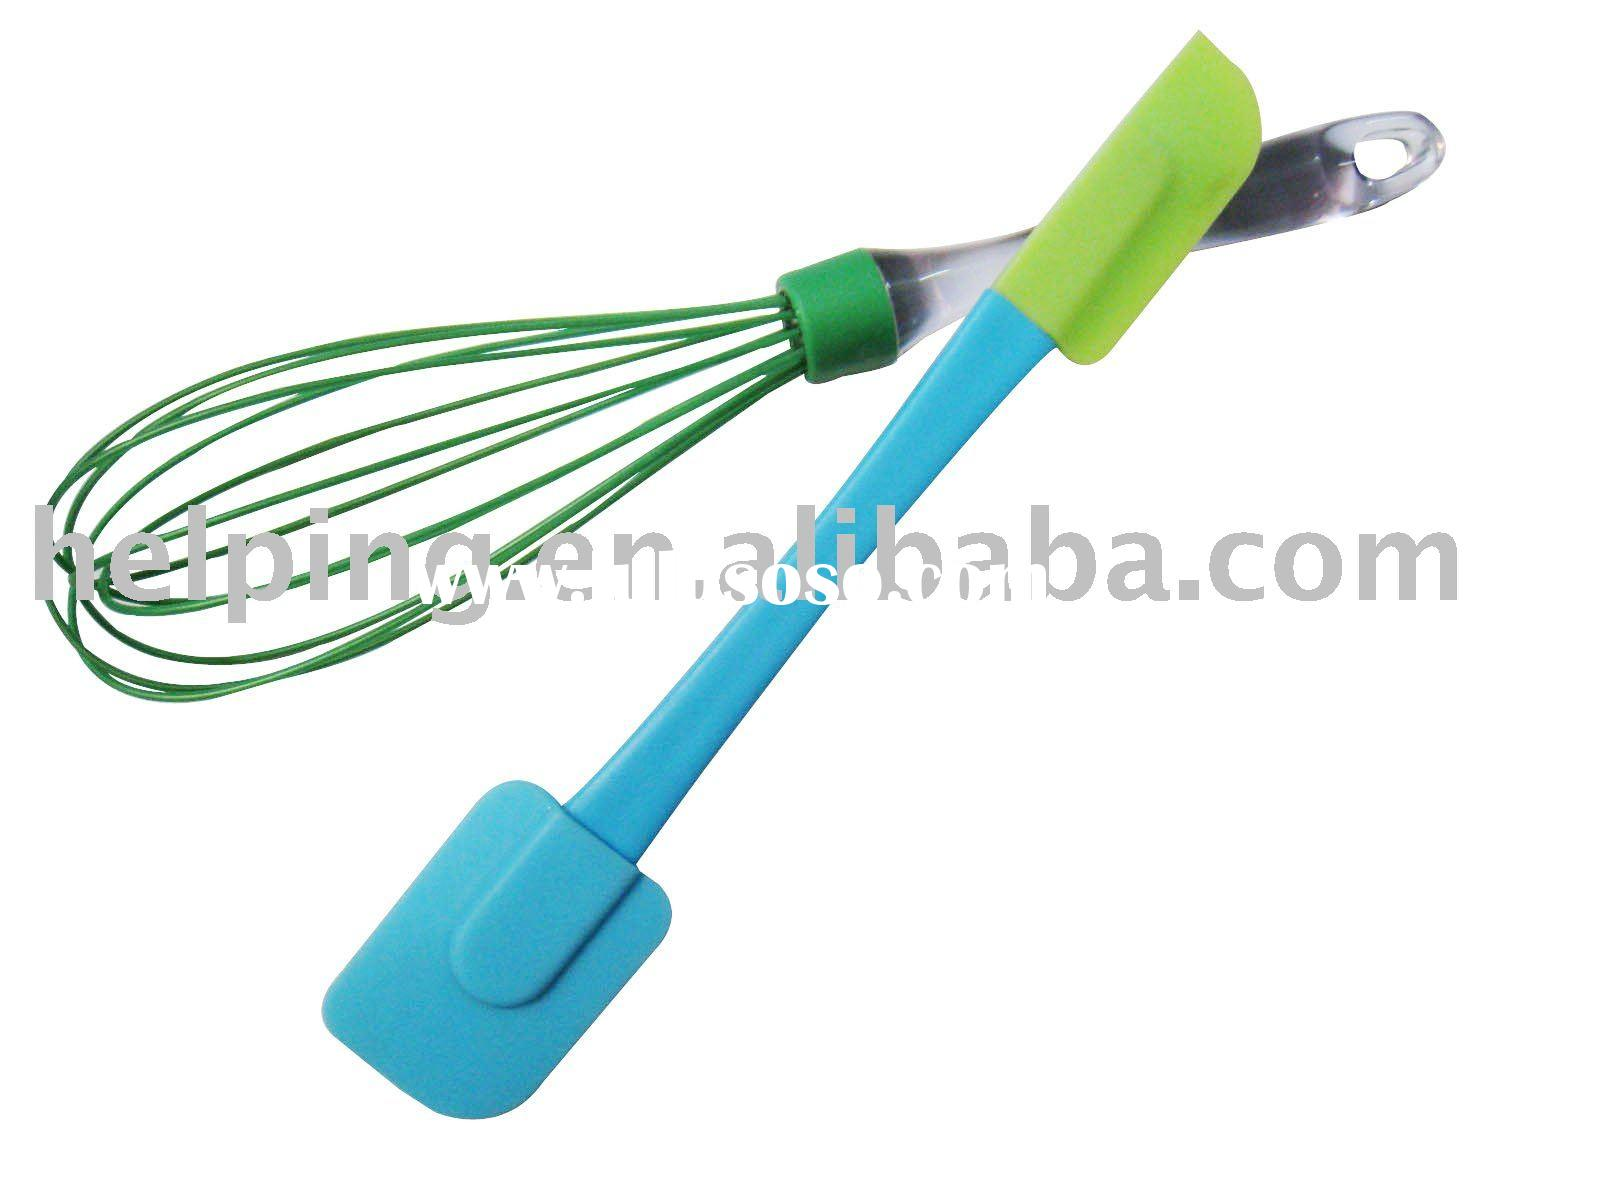 basic baking tools and its functions, basic baking tools and its ...